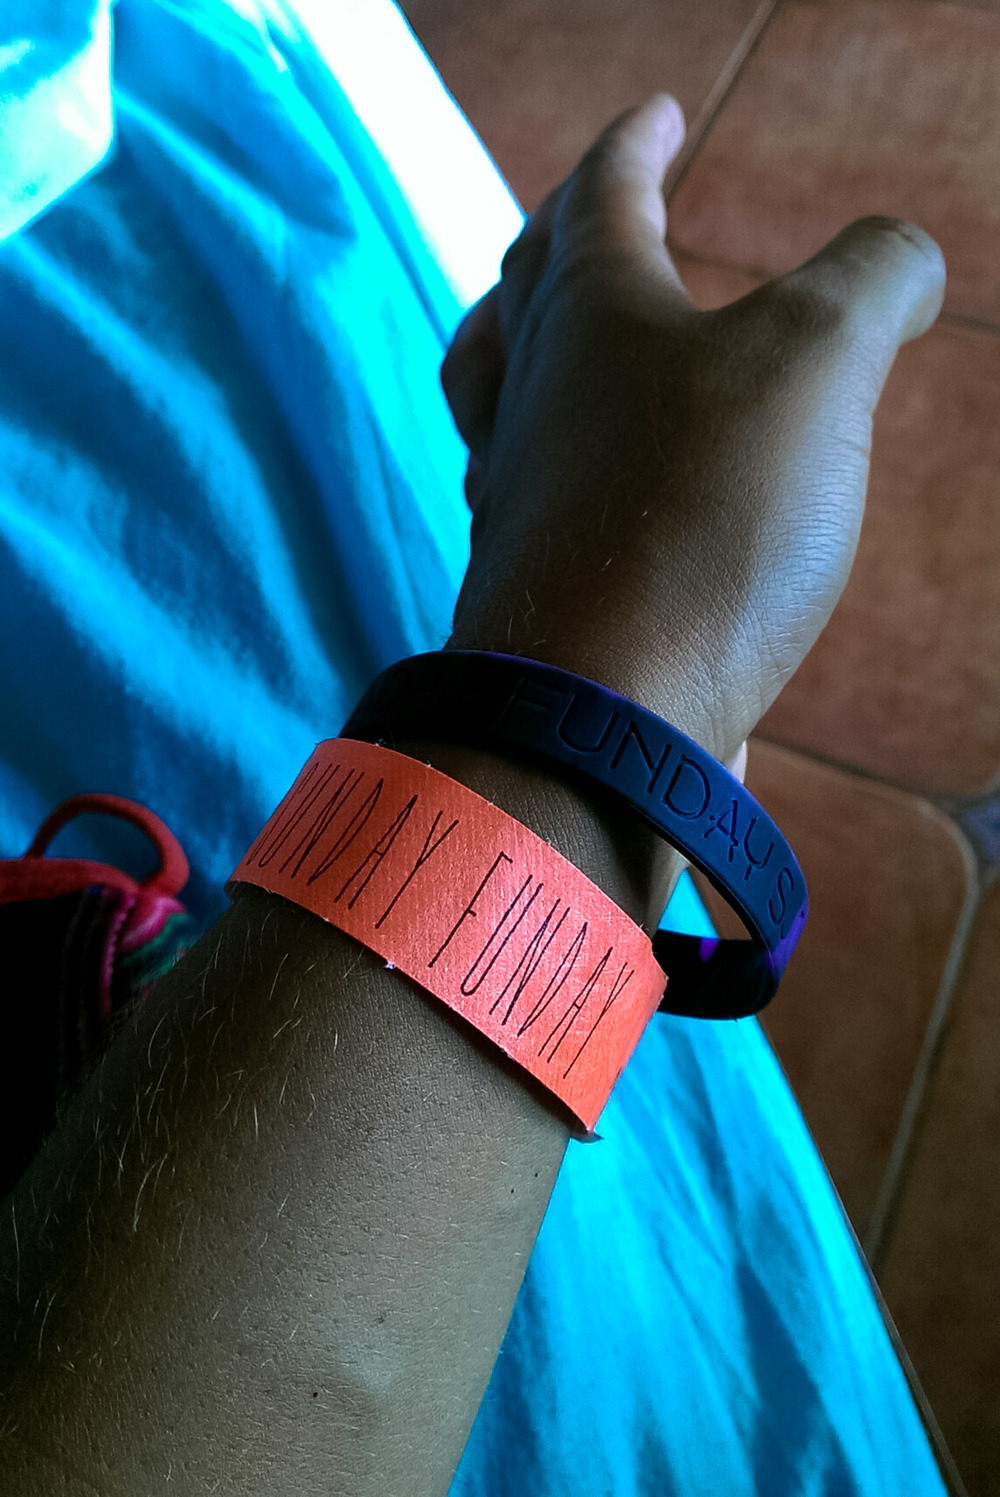 sunday funday wrist bands